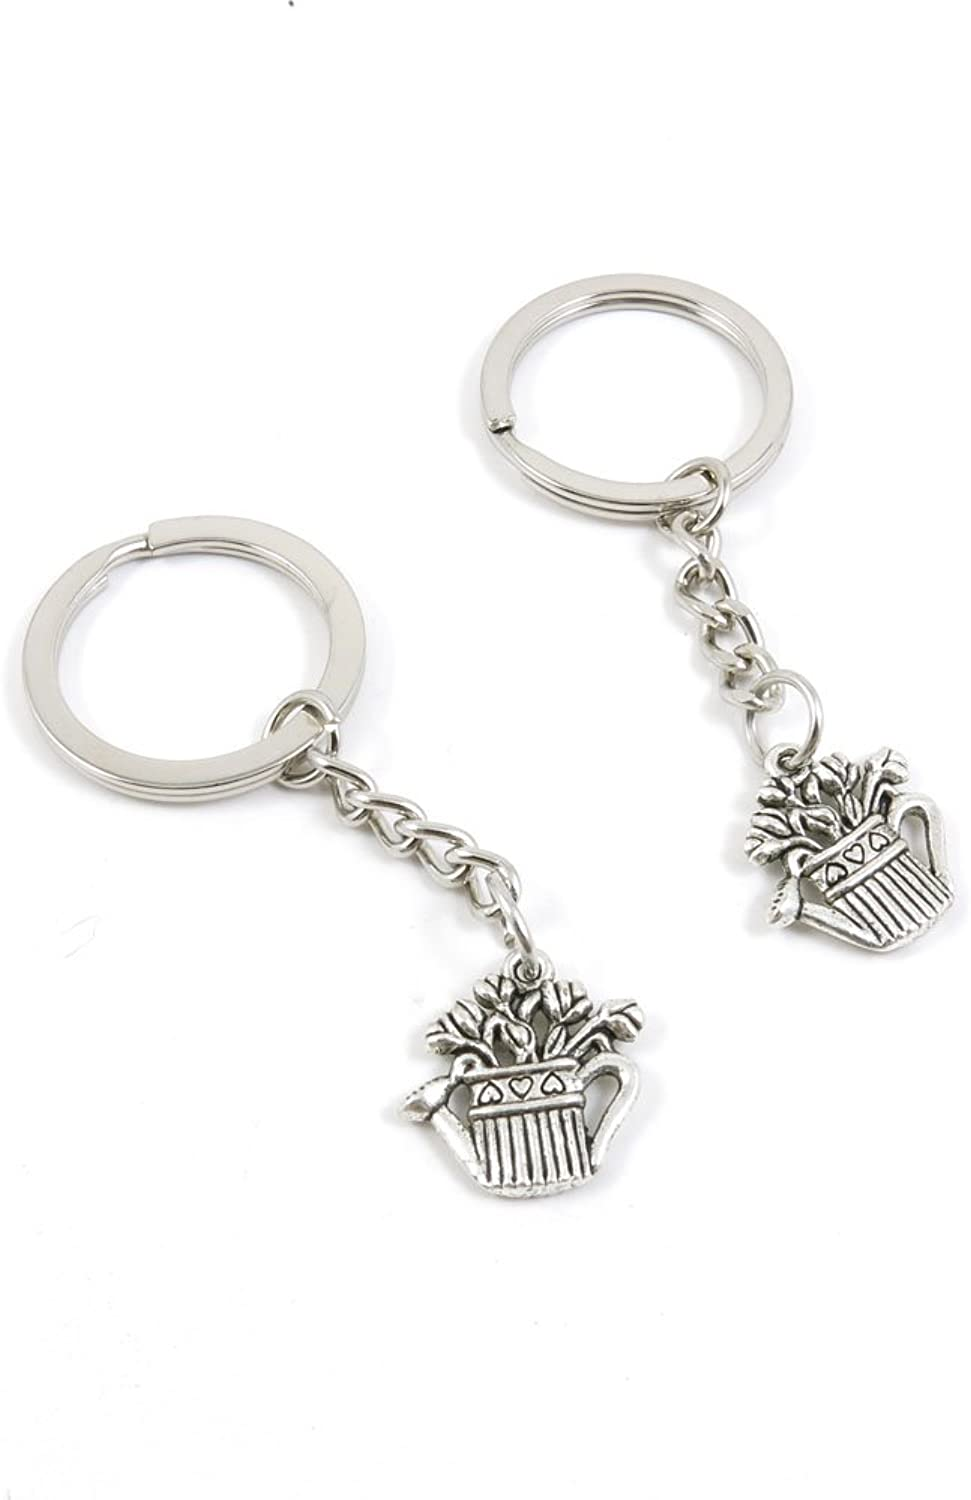 200 Pieces Fashion Jewelry Keyring Keychain Door Car Key Tag Ring Chain Supplier Supply Wholesale Bulk Lots E1ID2 Watering Can Pot